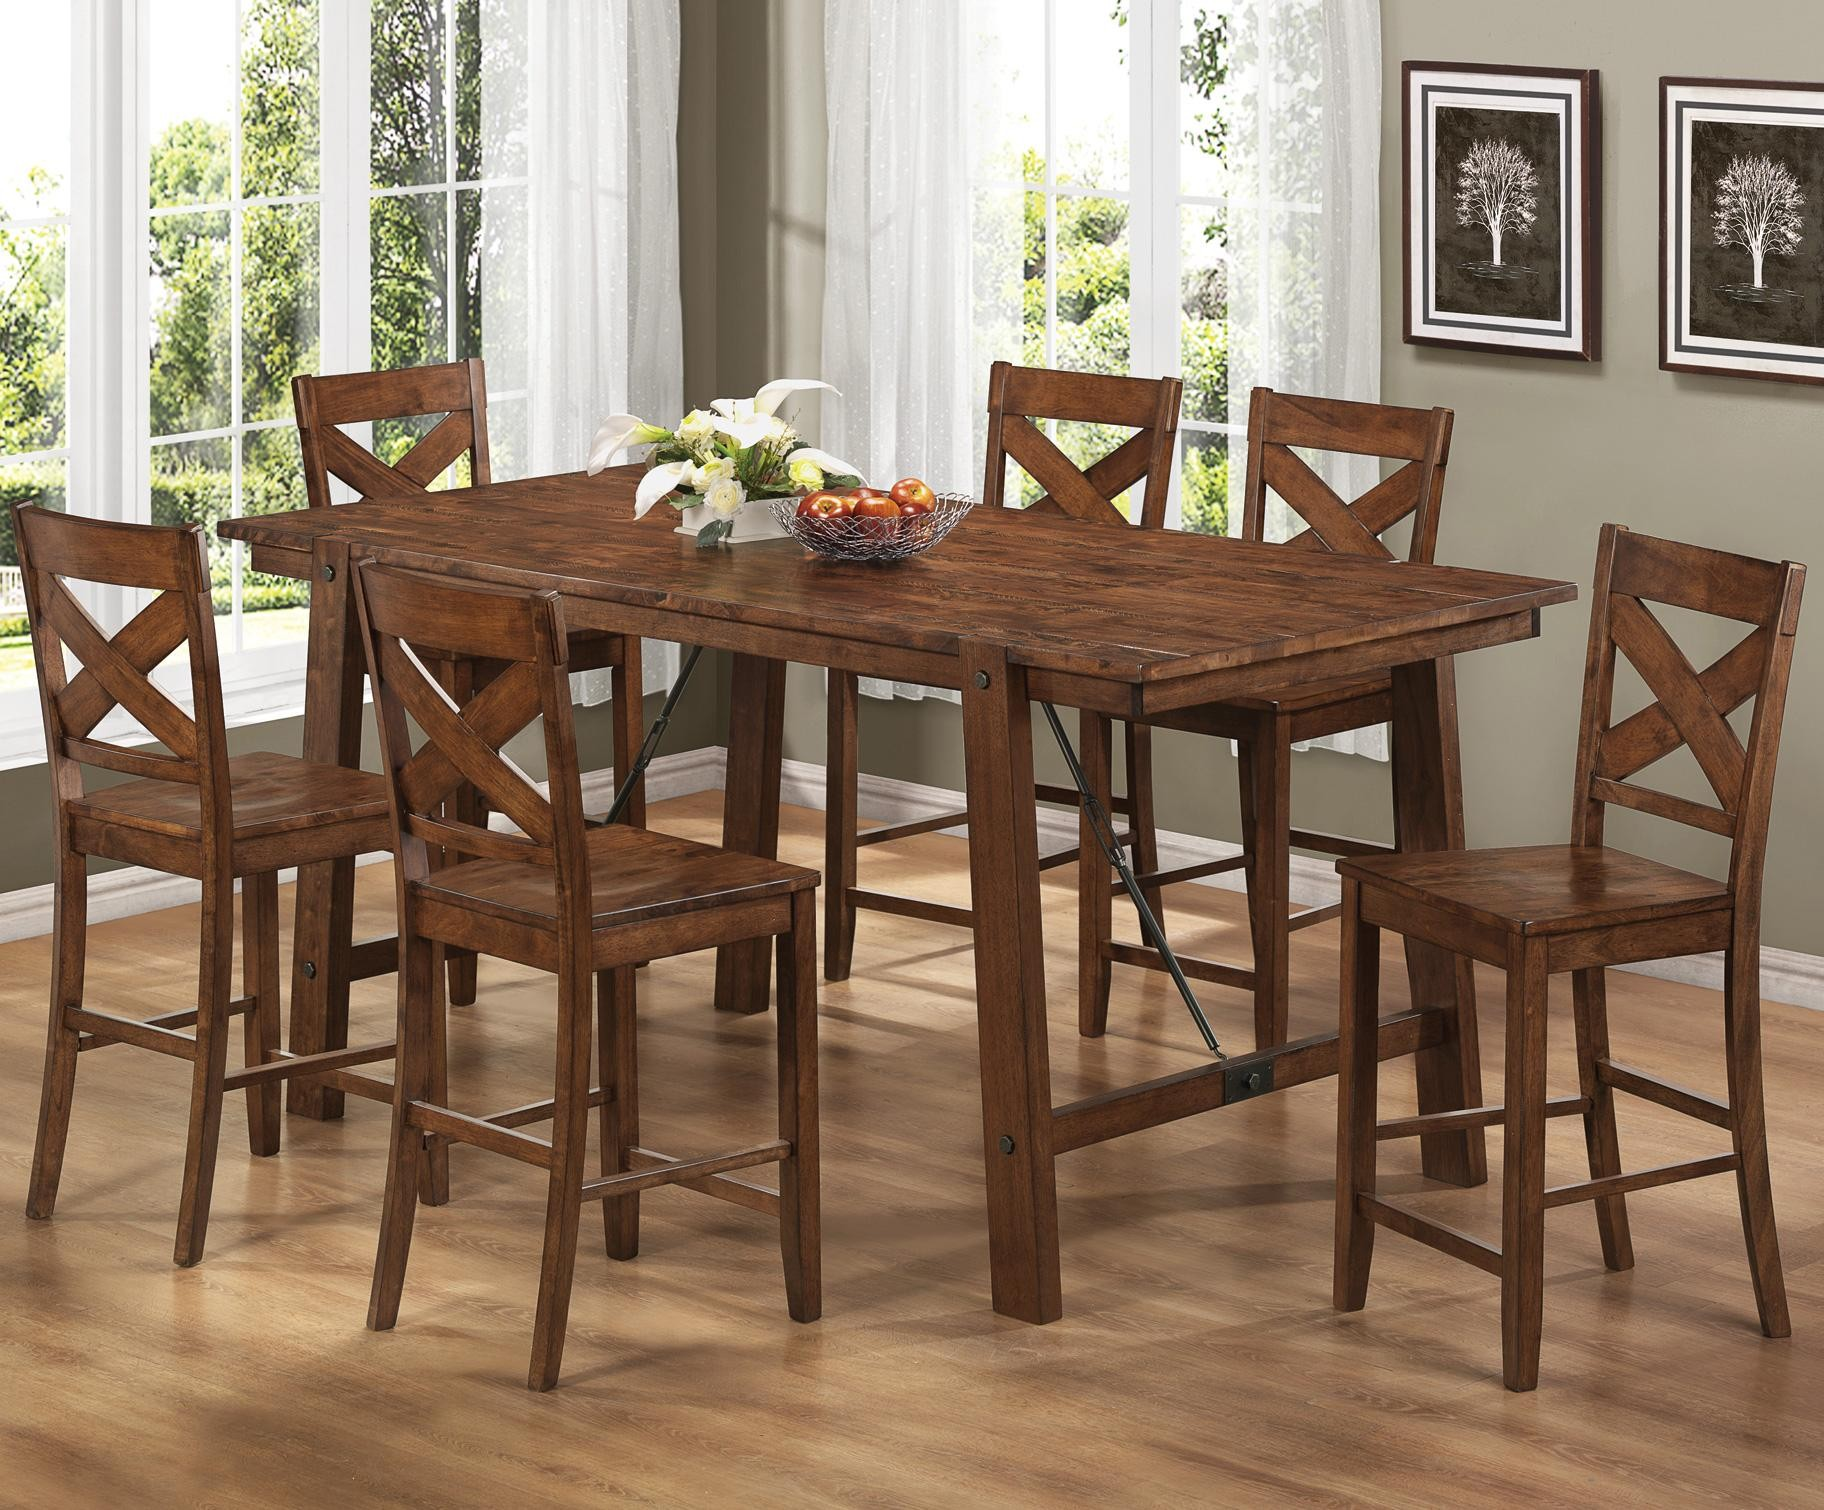 High top kitchen table sets homesfeed for Kitchen table and stools set